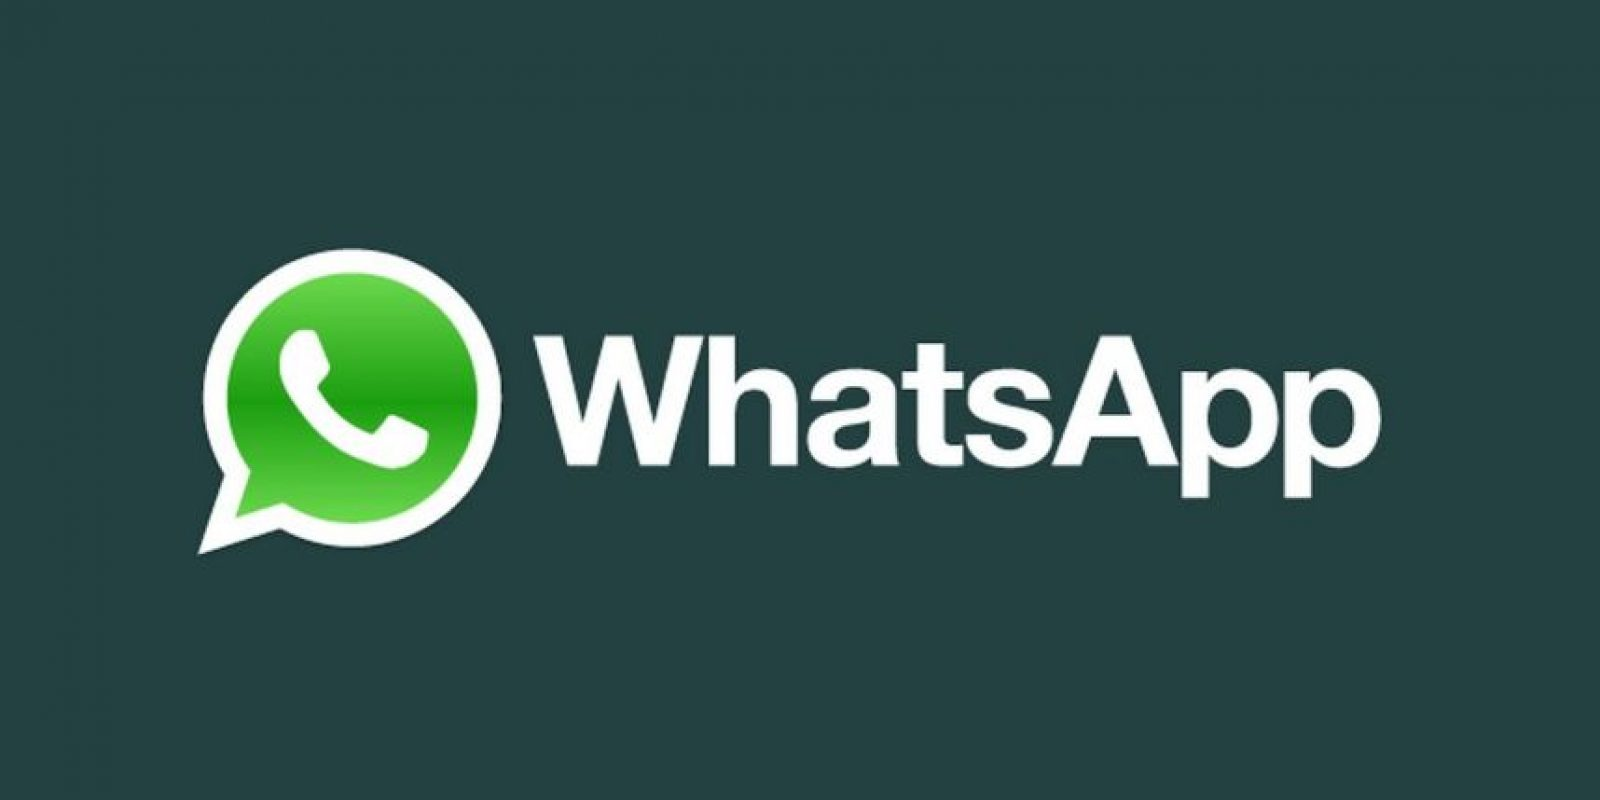 WhatsAppp – Jan Koum Foto: WhatsAppp